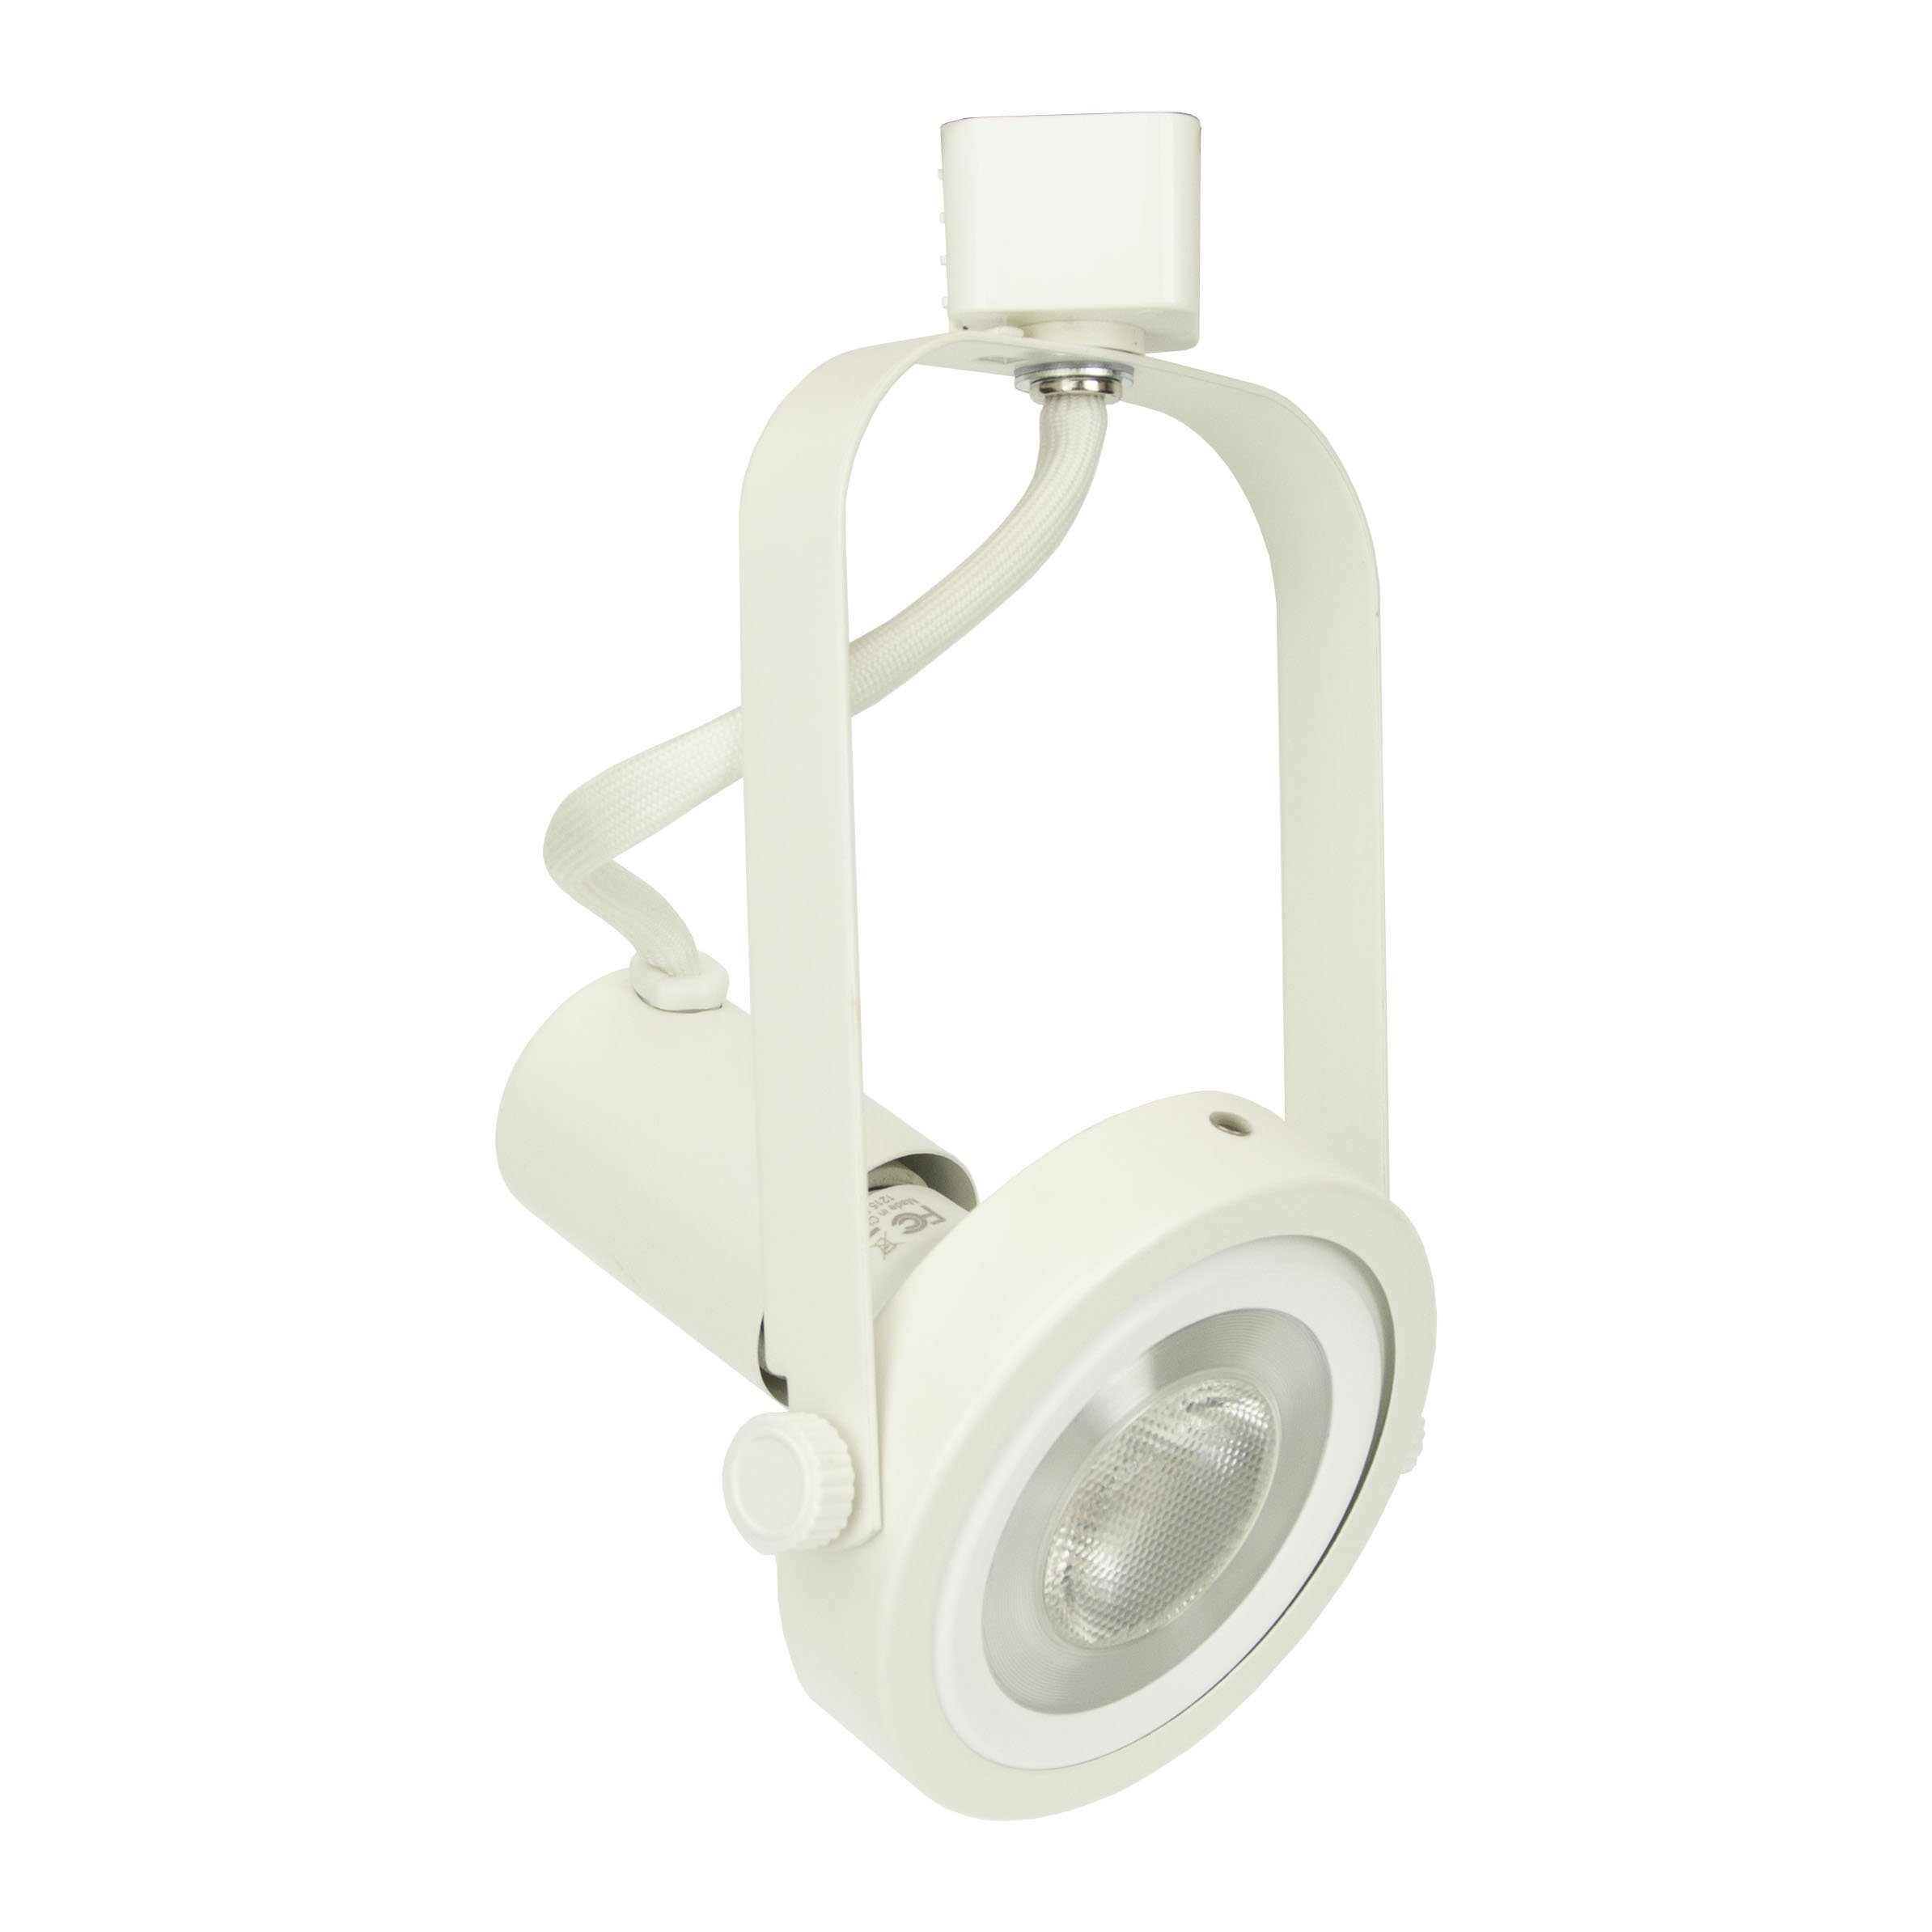 D&D Brand H System PAR30 Line Voltage Gimbal Ring Rear Loading Track Lighting Fixture White HTC-9005-WH ( No Bulb )